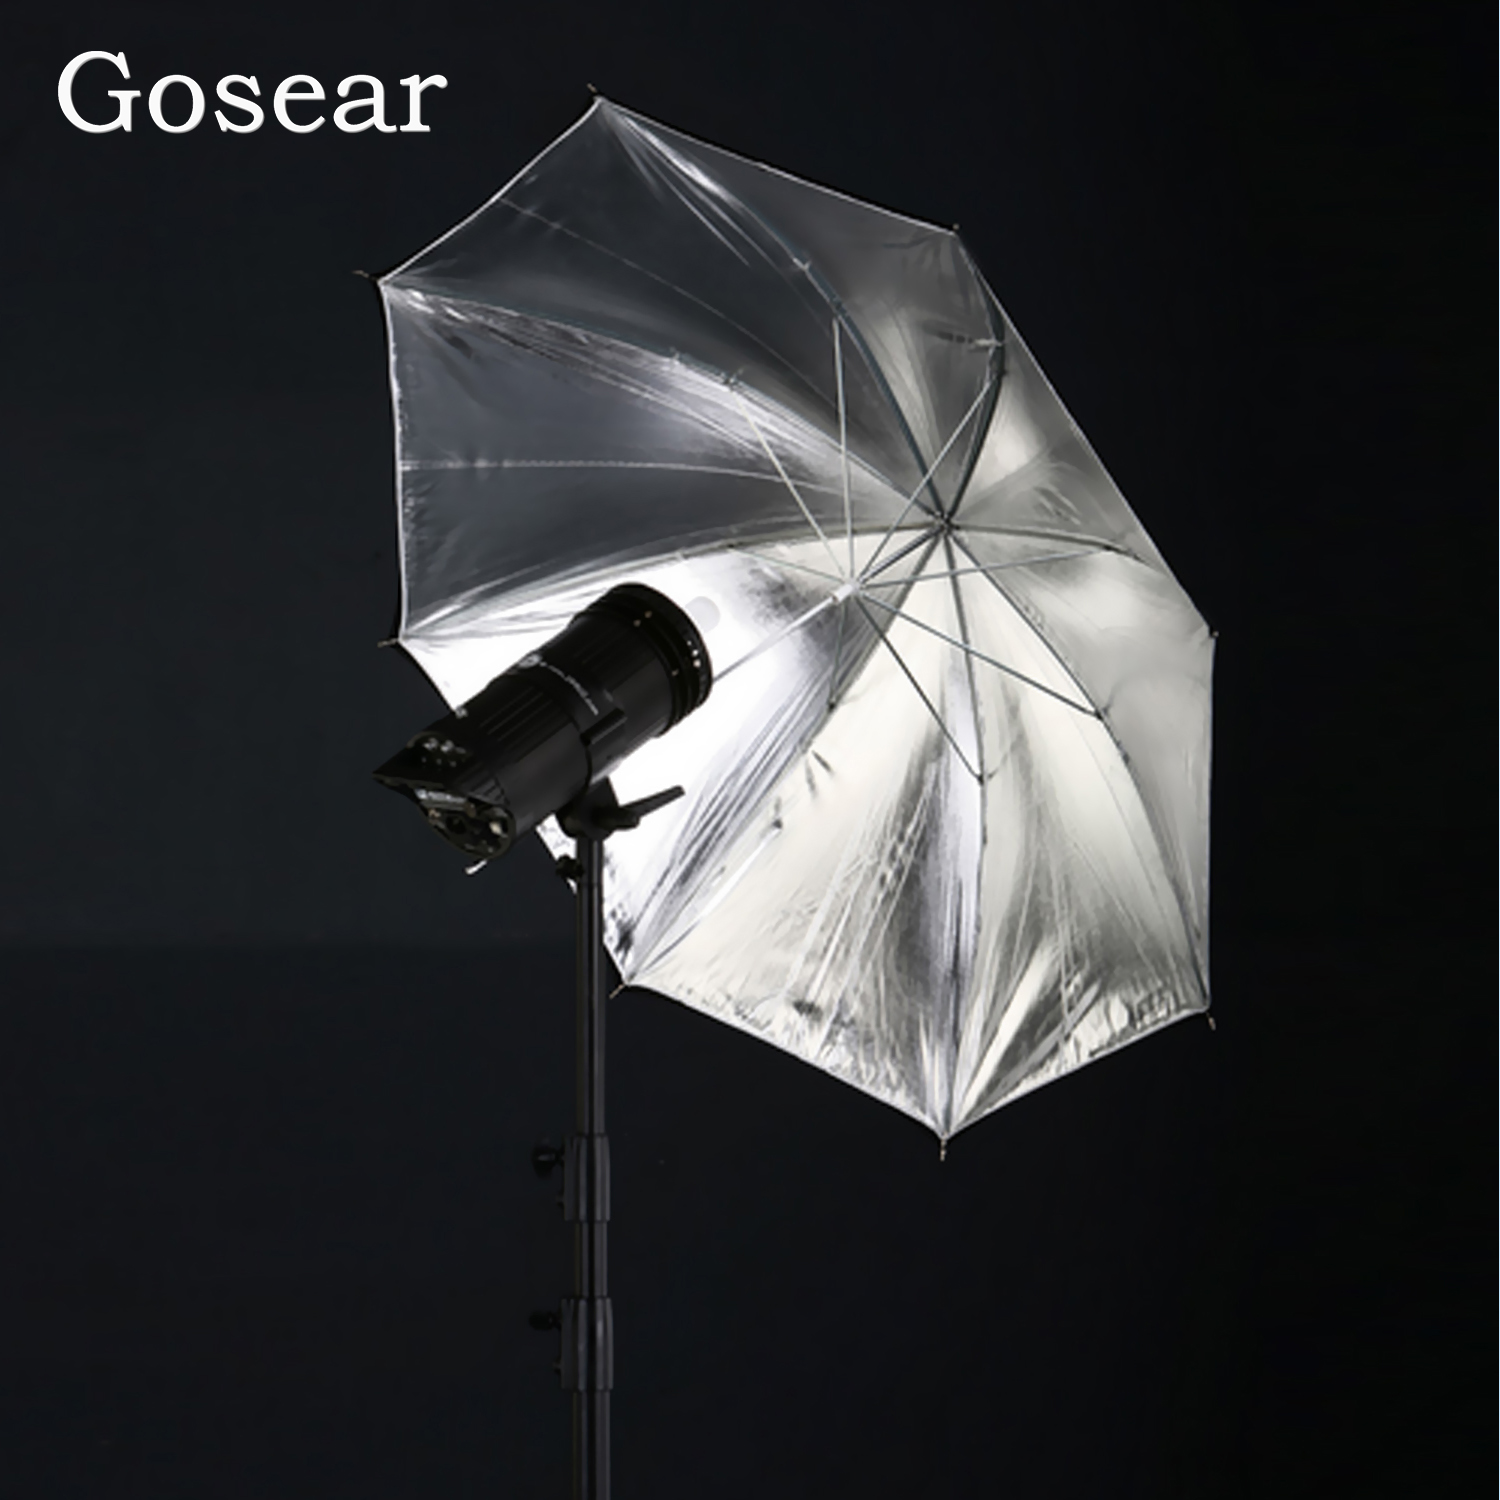 Gosear 85cm Photography Diffuser Double Layer Black And Silver Photo Studio Reflector flash Soft Umbrella Accessories enlarge